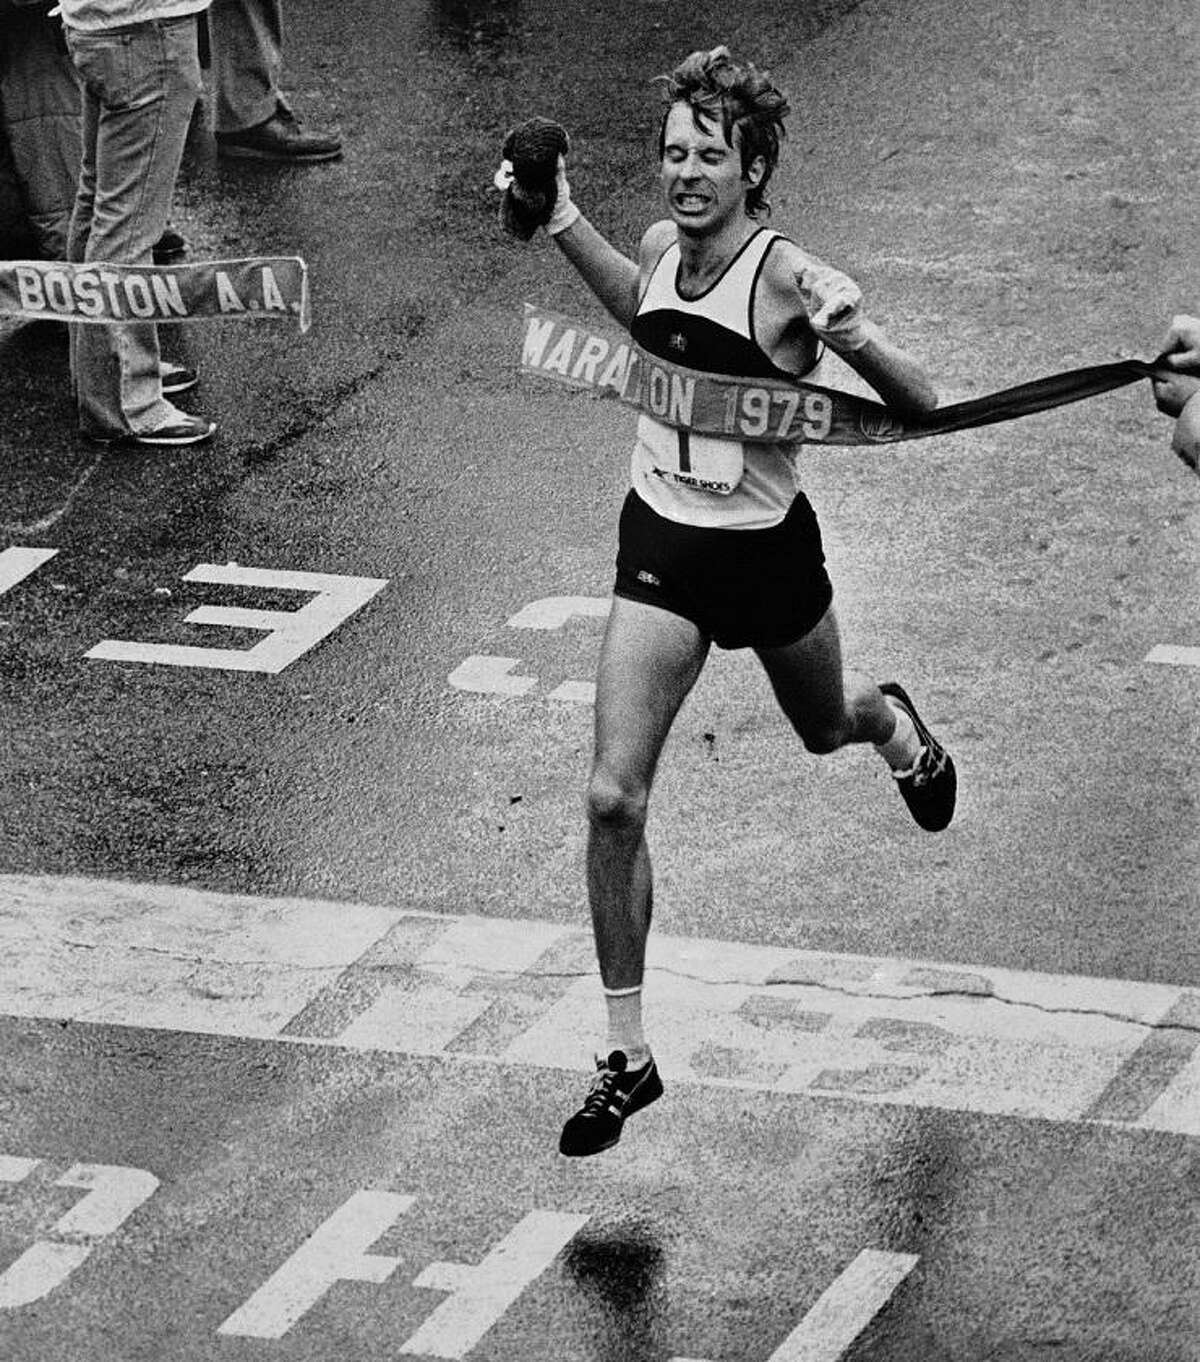 Bill Rodgers of Melrose, Mass., breaks the tape as he crosses the finish line in Boston, April 17, 1979, to win the 83rd running of the Boston Marathon in 2 hours, 9 minutes, 27 seconds. (AP Photo)